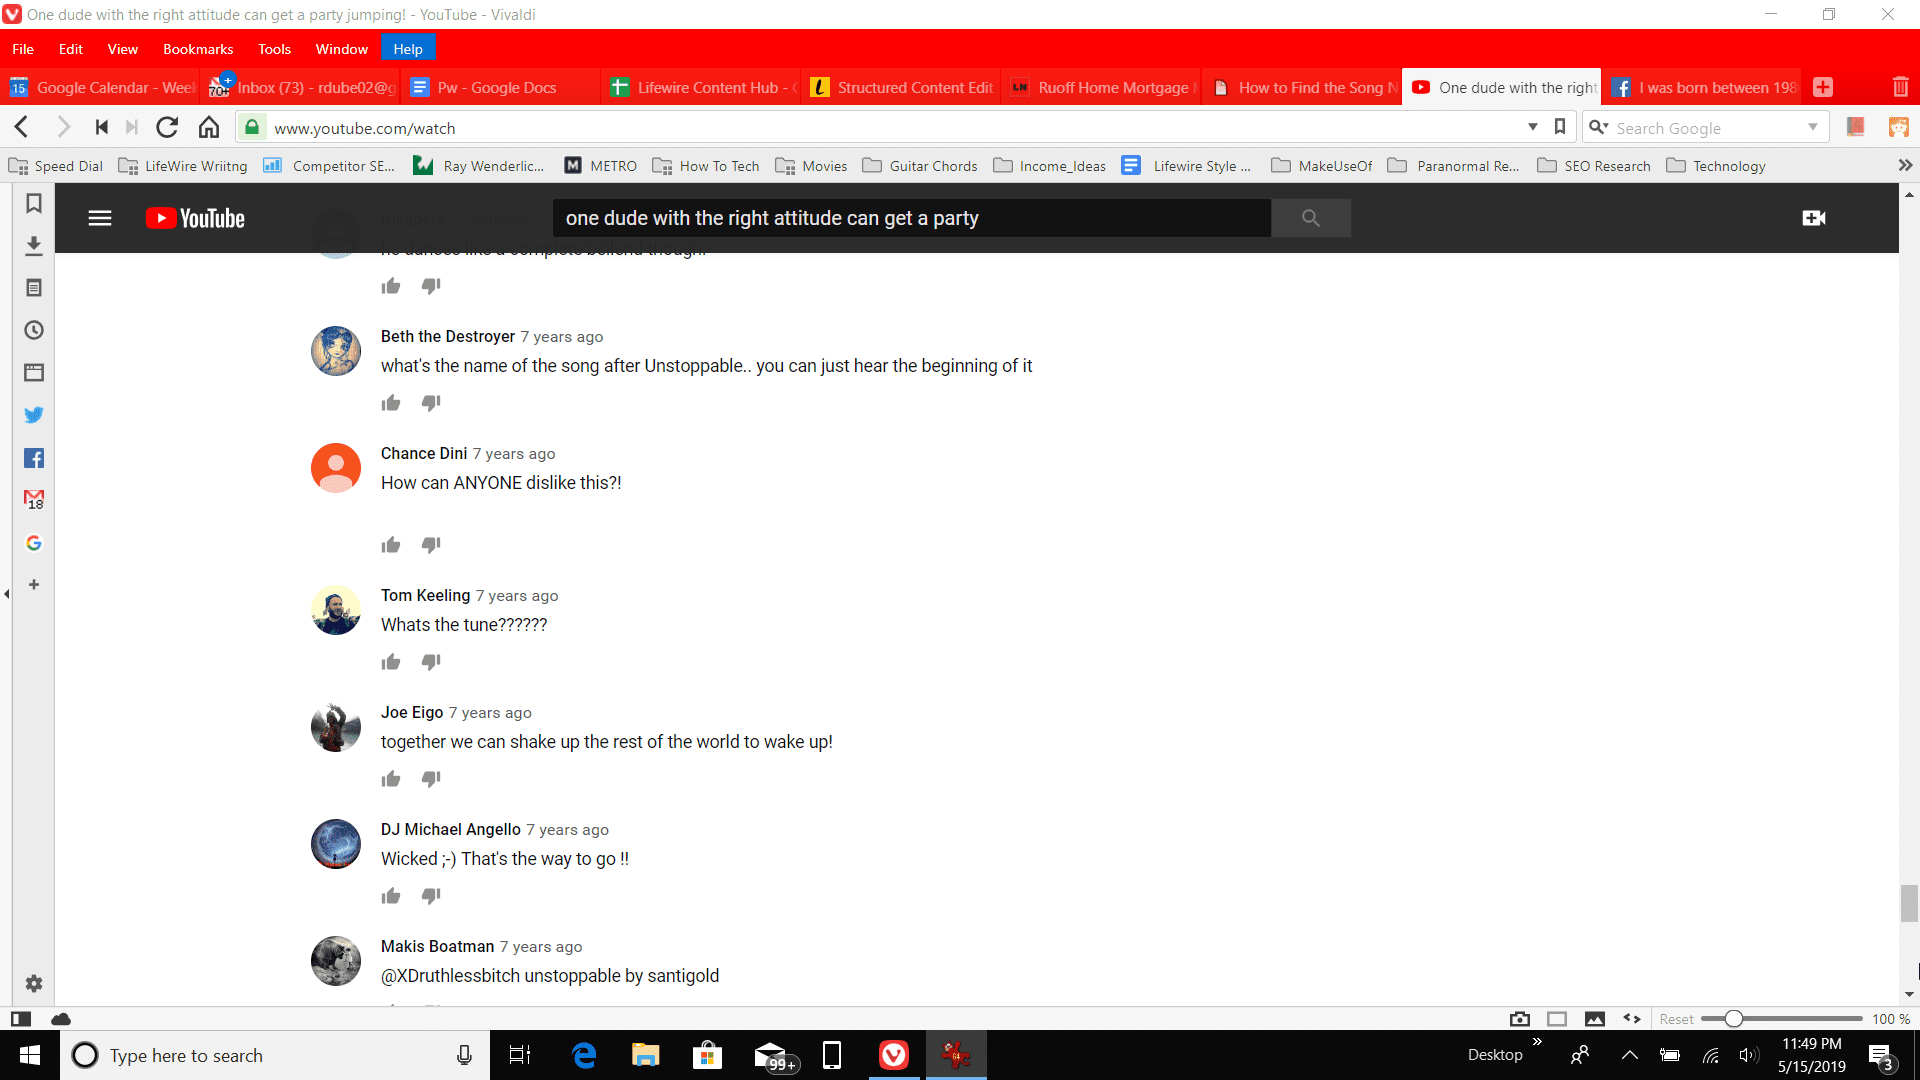 How to Identify Songs In YouTube Videos